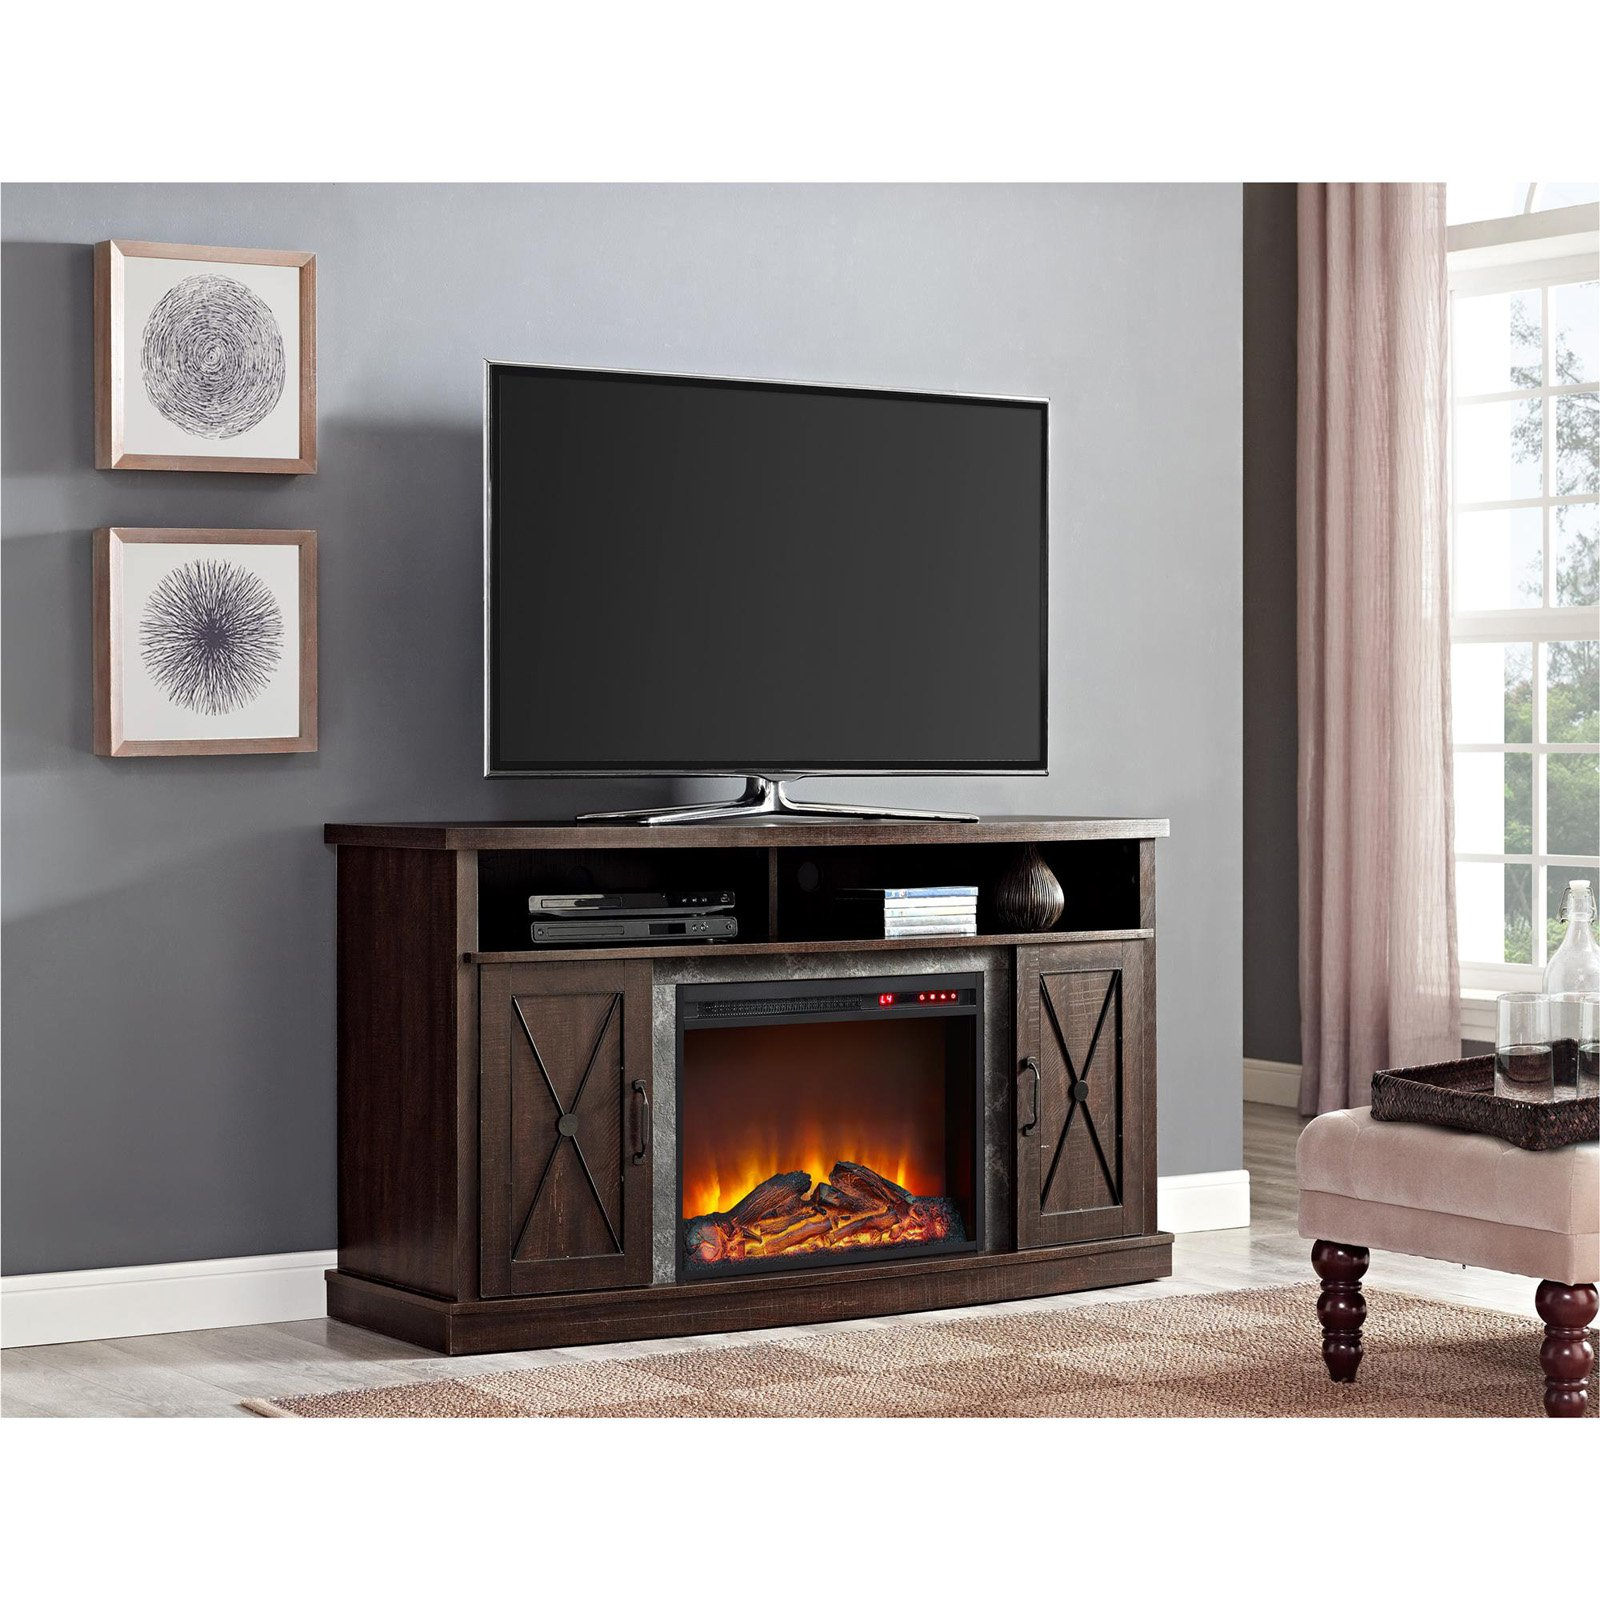 "Ameriwood Home Barrow Creek Electric Fireplace TV Stand for TVs up to 60"", Espresso"